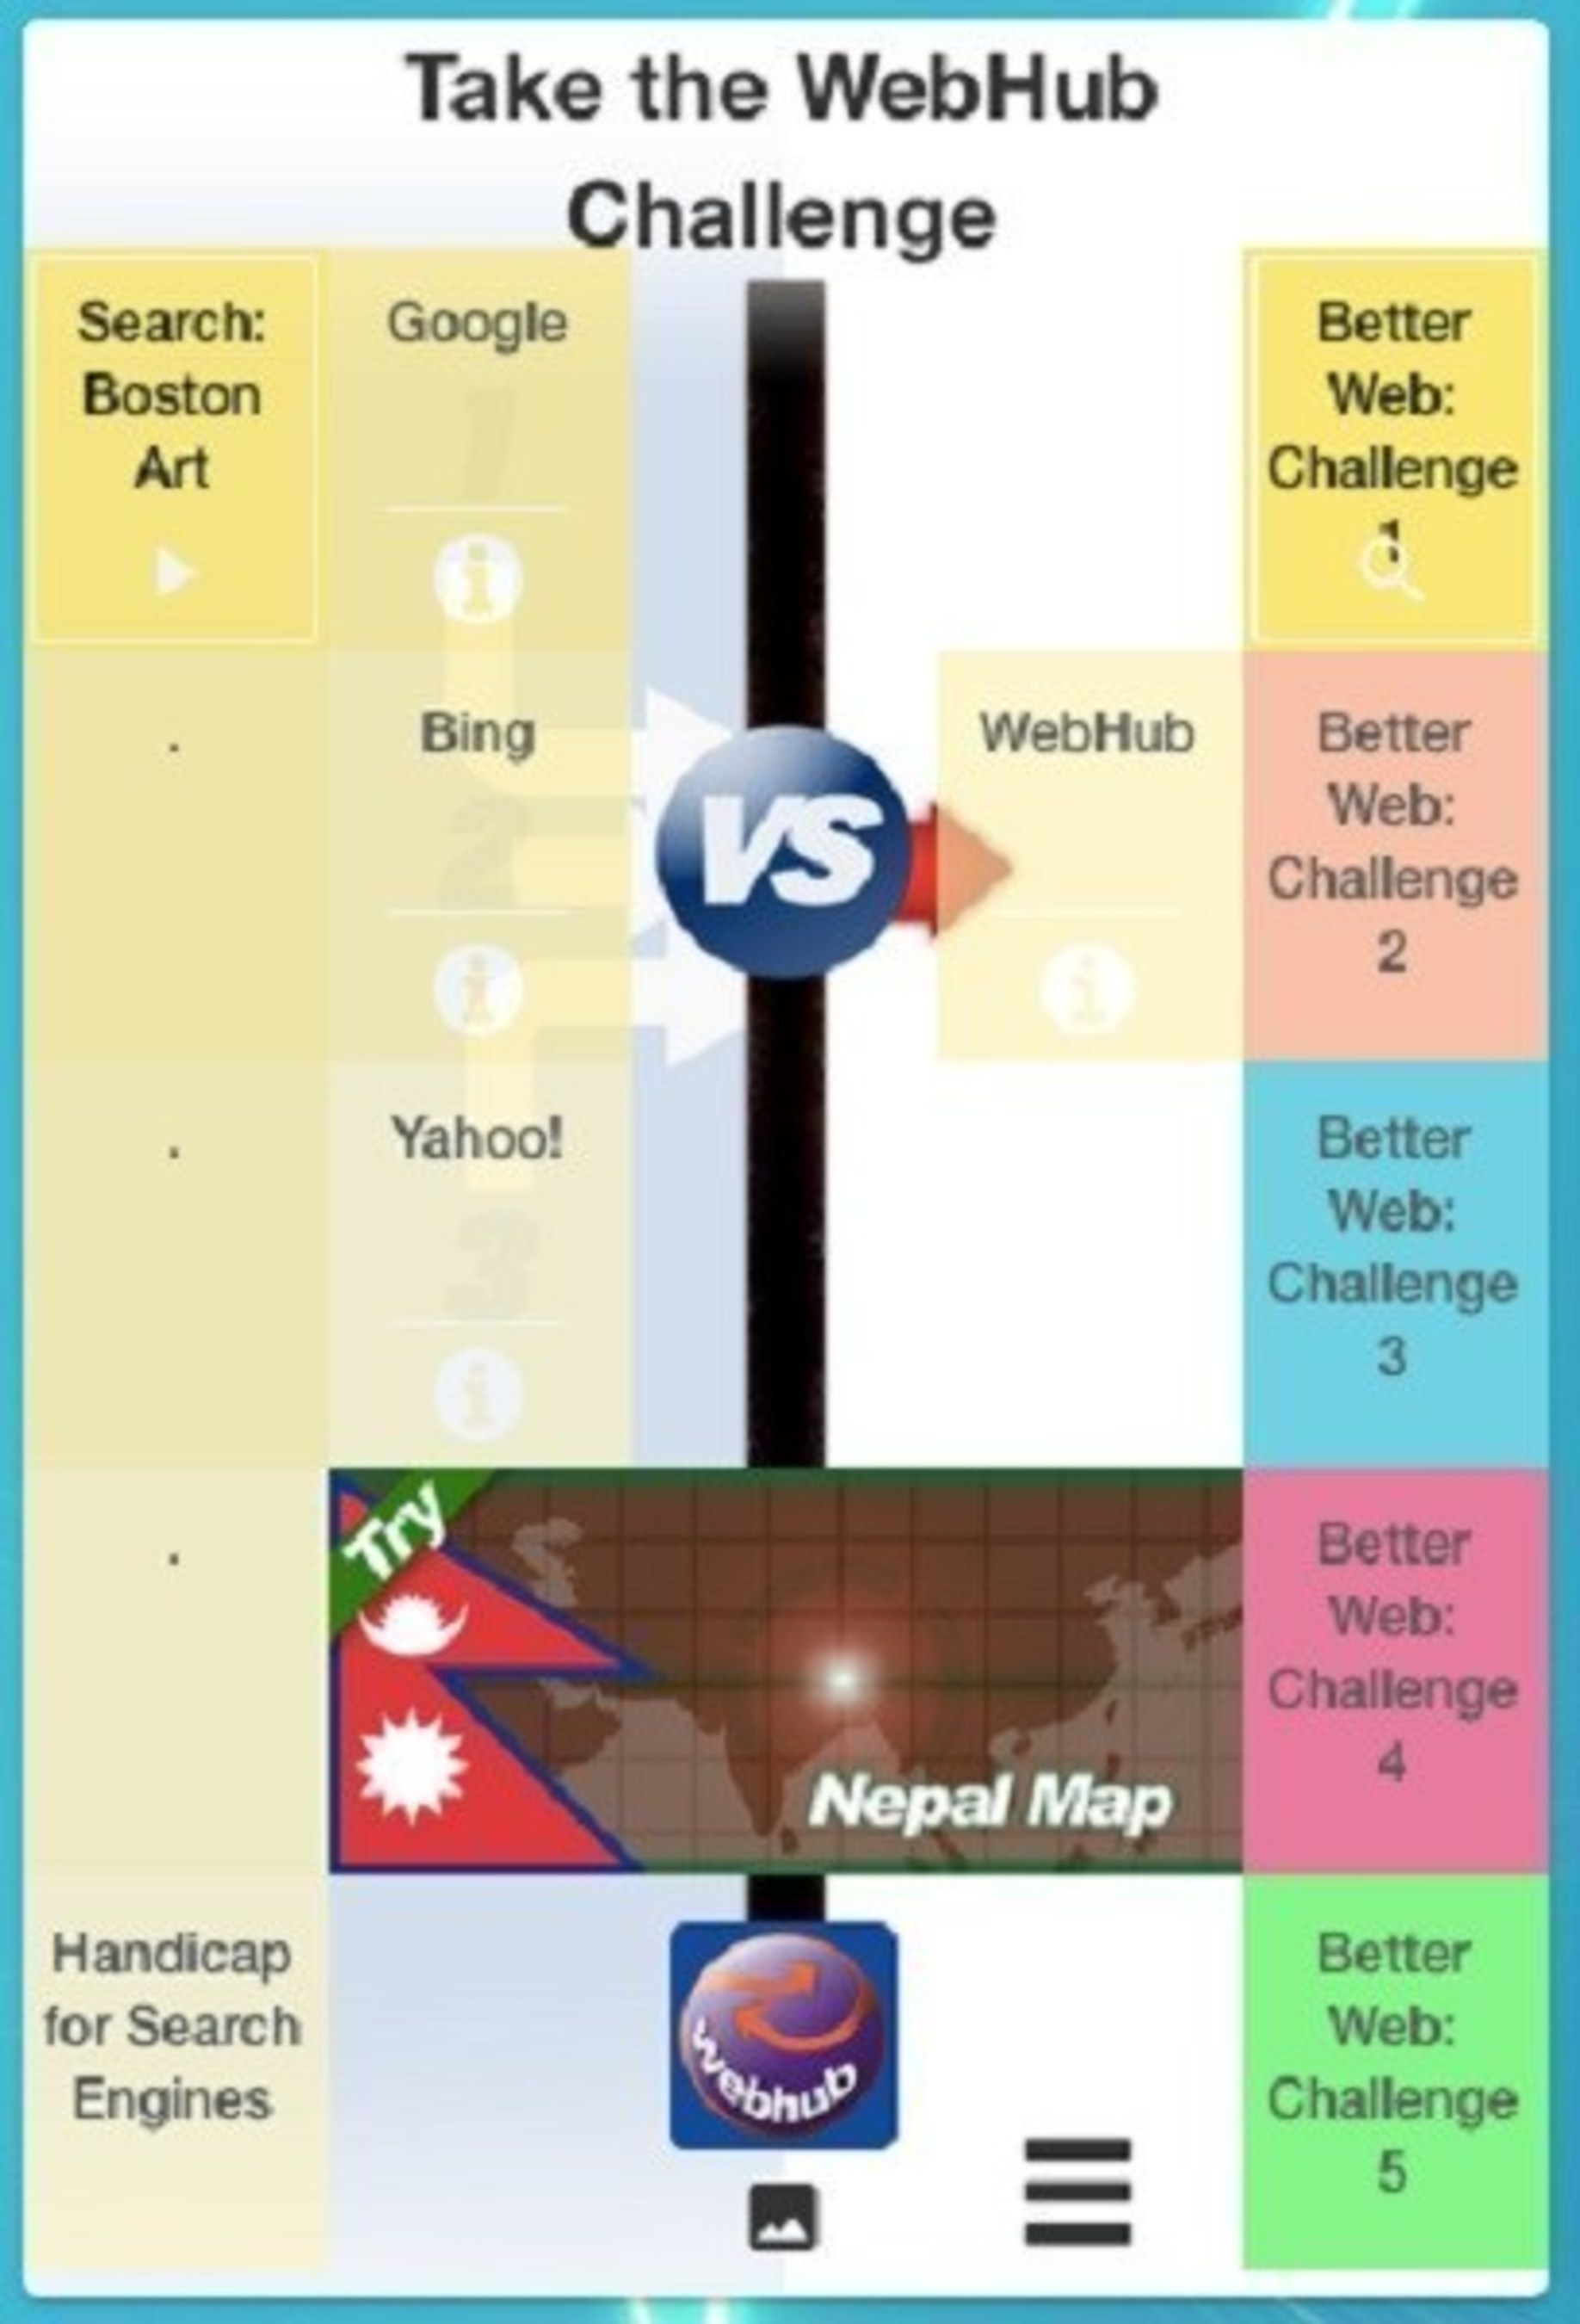 Yuvee, Inc. announces a head-to-head challenge map of traditional search engines versus